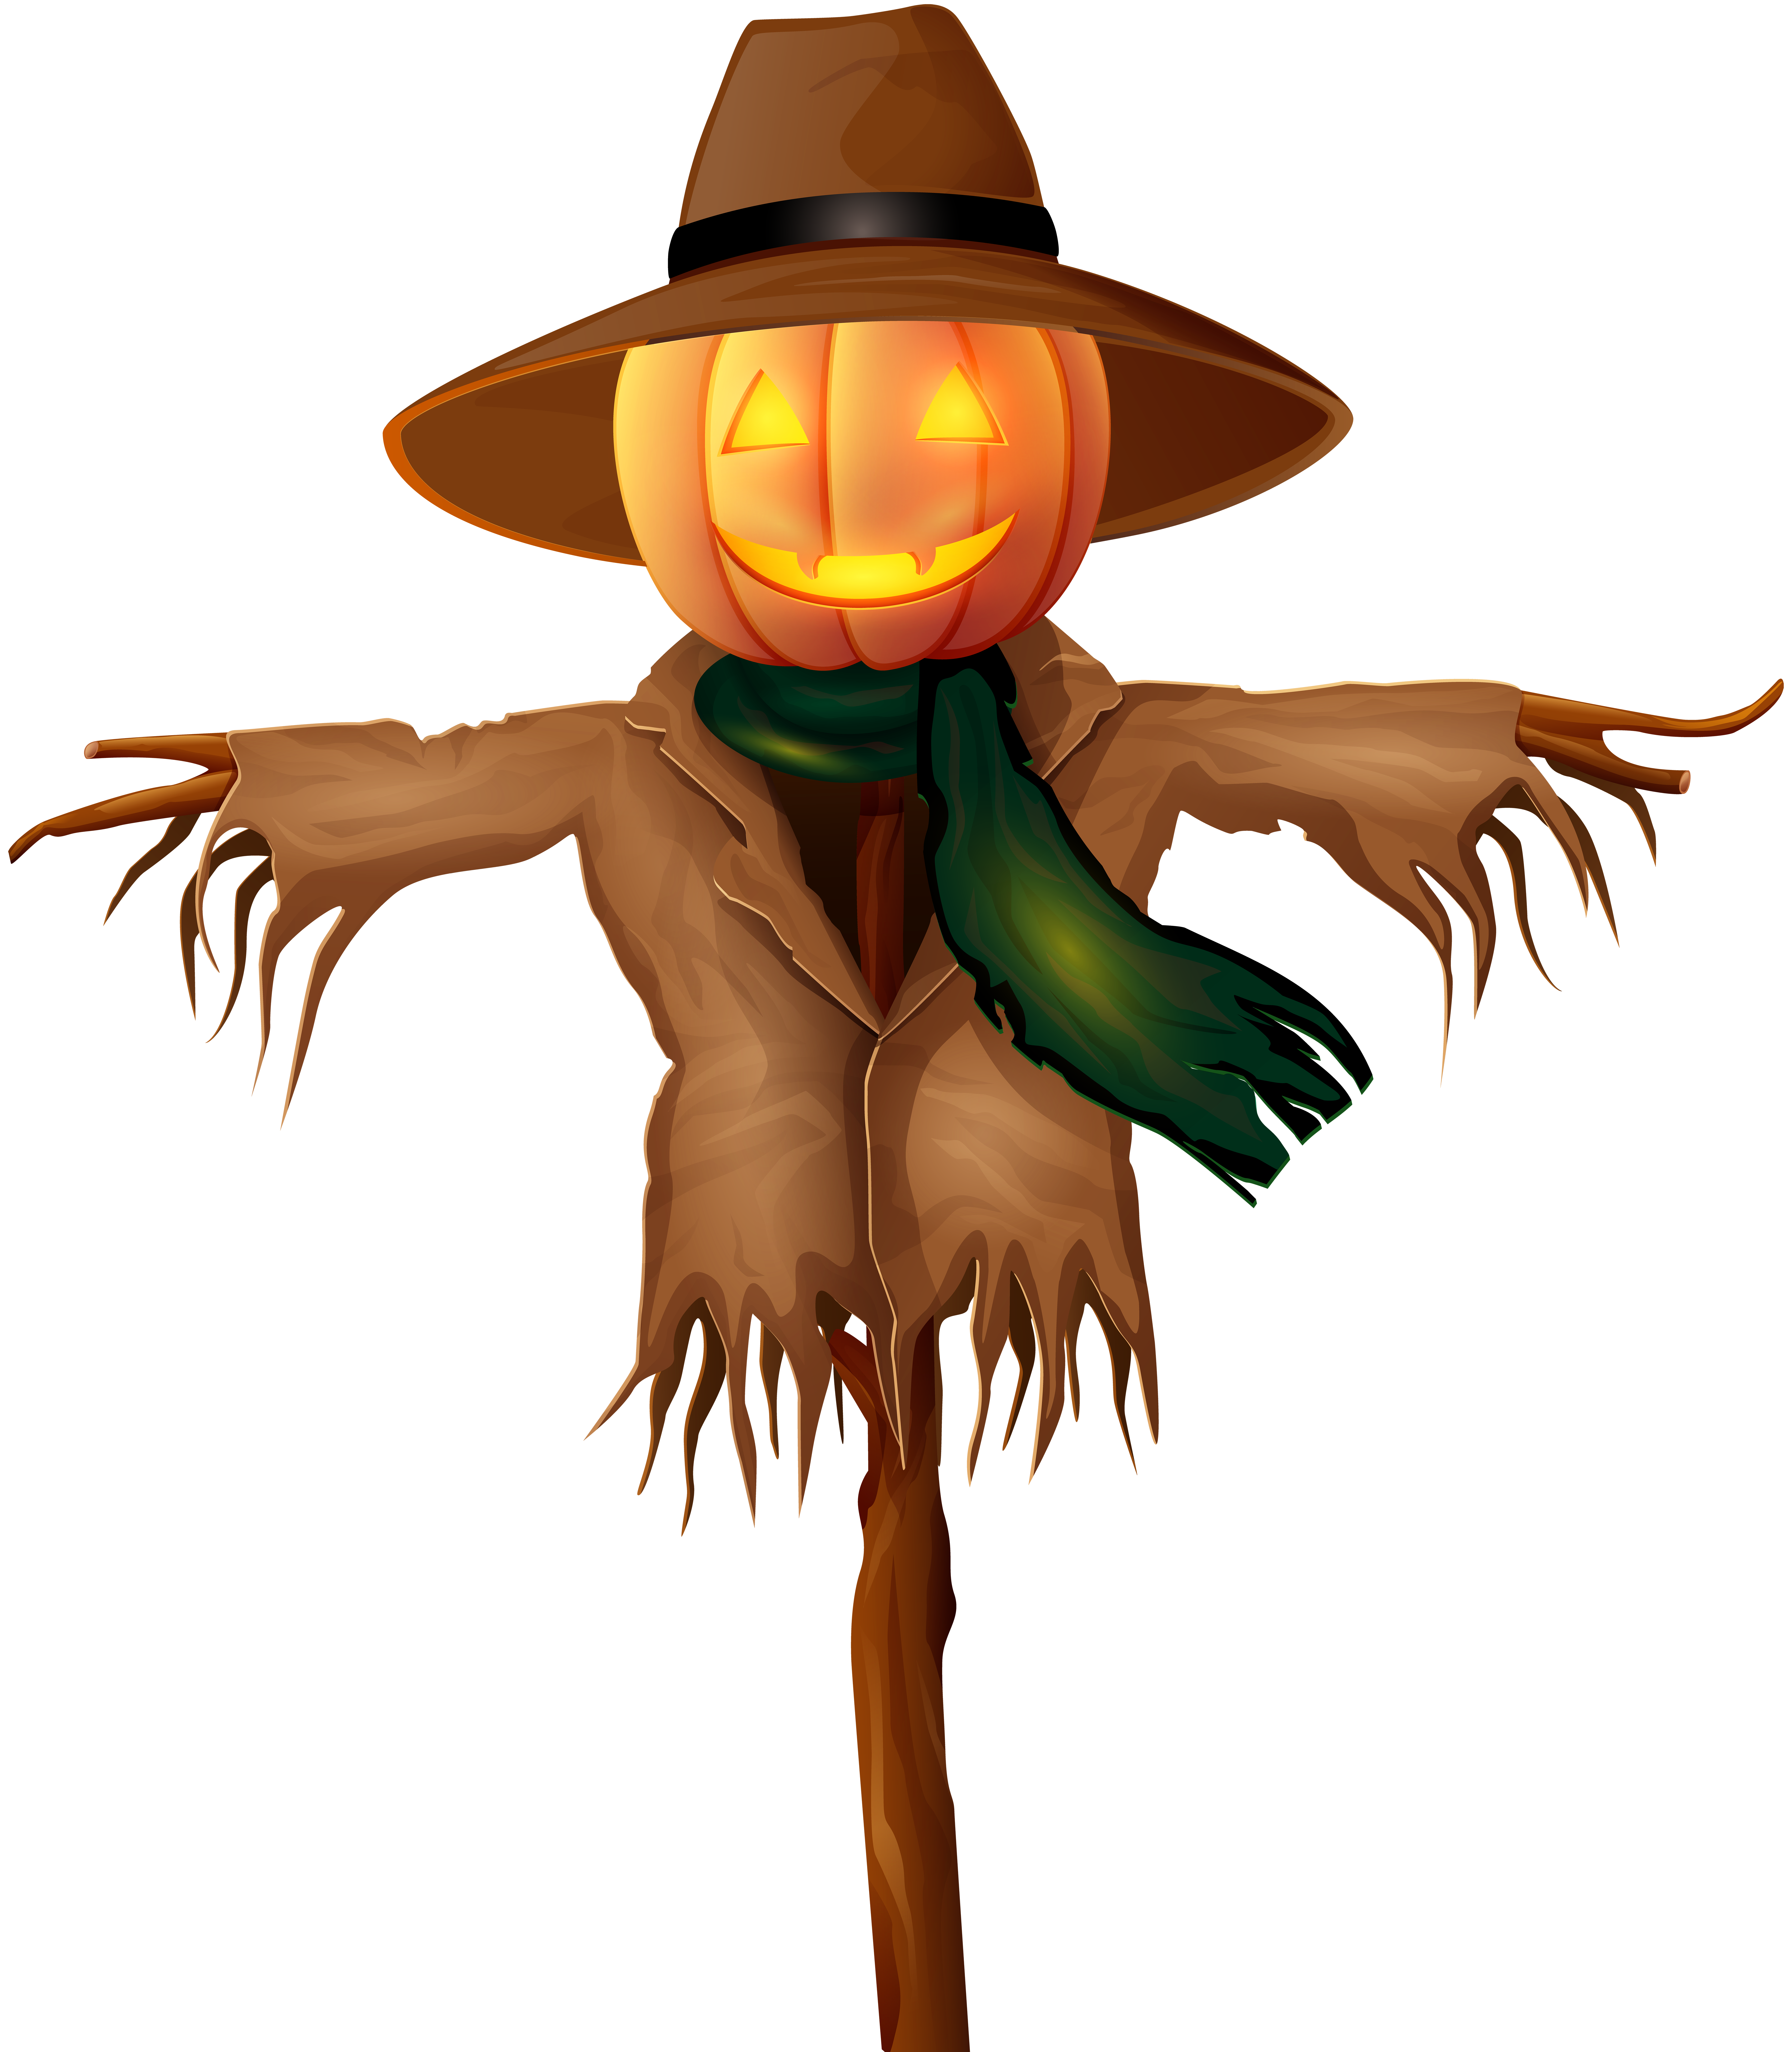 Scarecrow clipart png. Halloween gold clip art